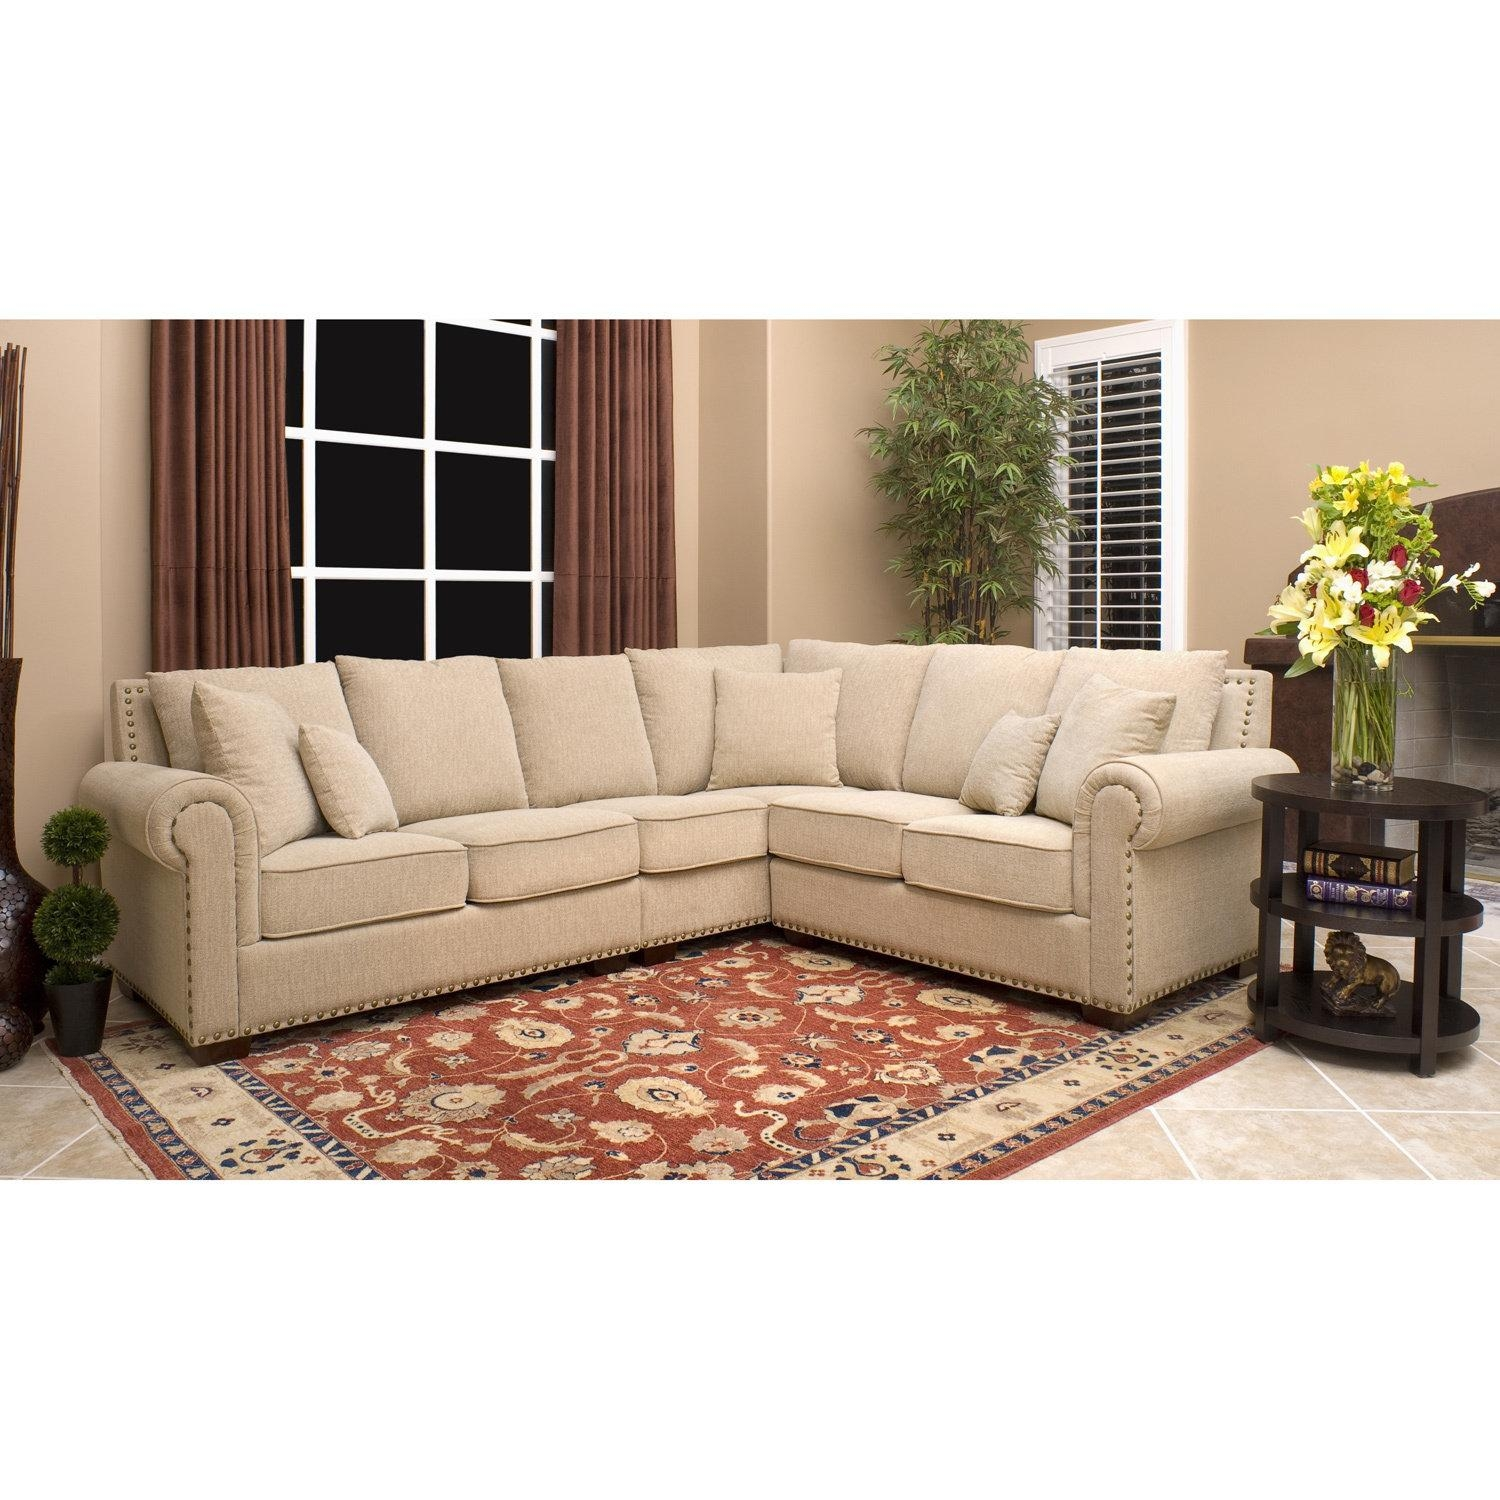 Sofas Loveseats Archives – Best Furniture Your Choices Pertaining To Abbyson Living Sectional (View 5 of 15)